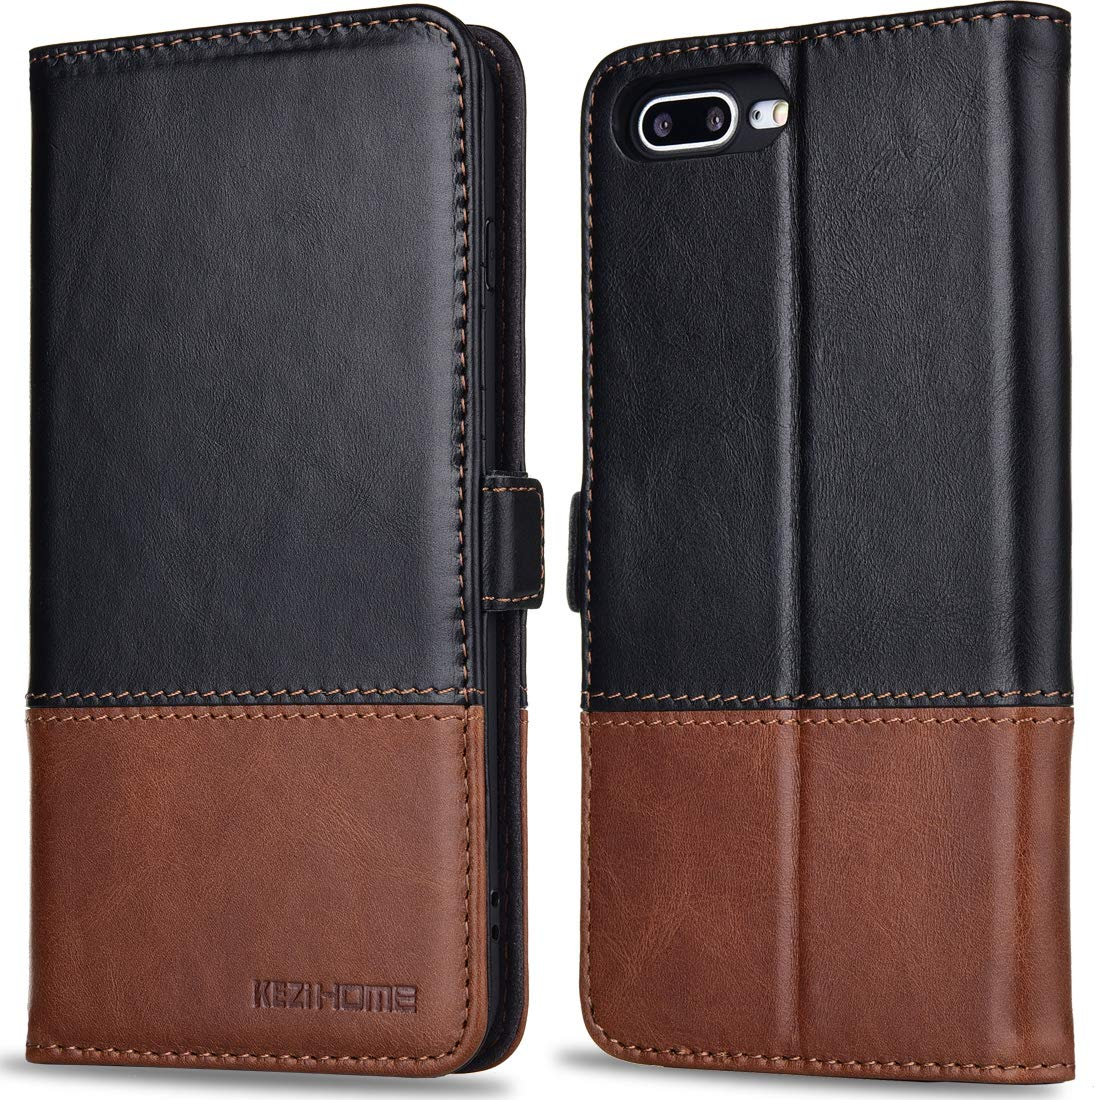 KEZiHOME iPhone 8 Plus Wallet Case iPhone 7 Plus Case, Genuine Leather Color Matching Wallet with Kickstand and Card Slot Magnetic Clasp Flip Cover for iPhone 8 Plus (Black/Brown)